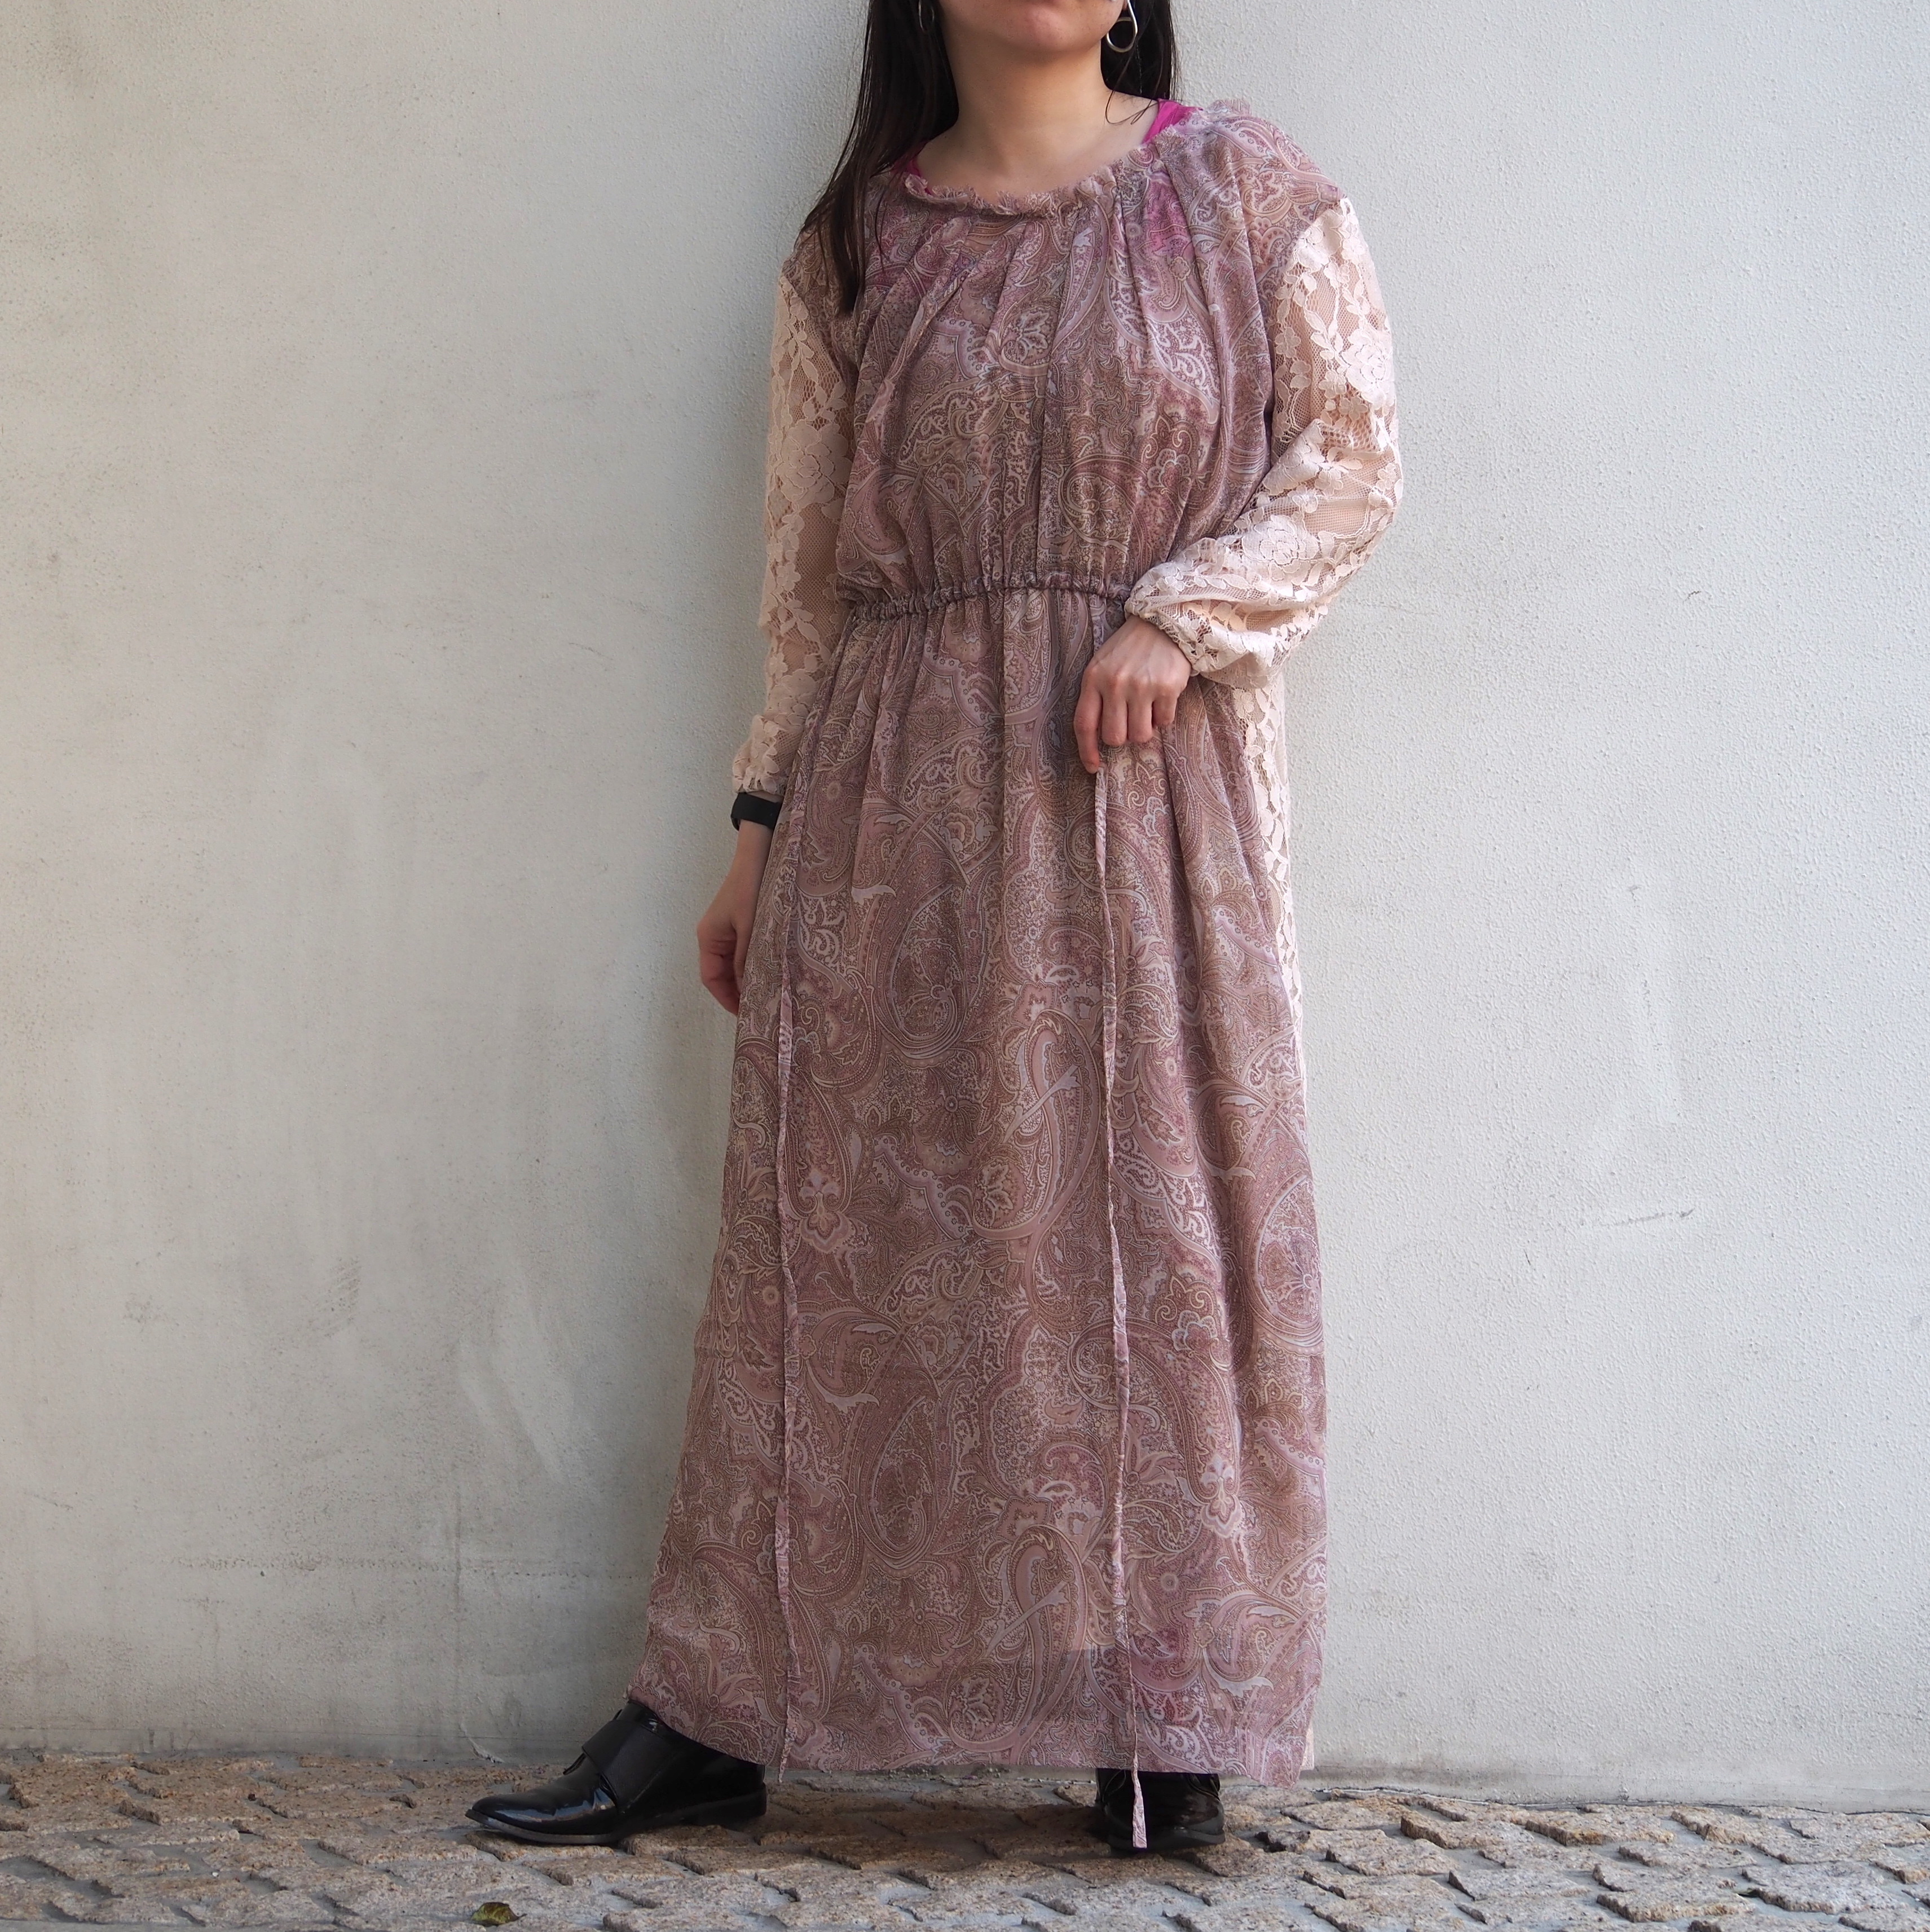 【ethical hippi】tuck gather one piece(lace×brown) / 【エシカル ヒッピ】タック ギャザー ワンピース(レース×ブラウン)